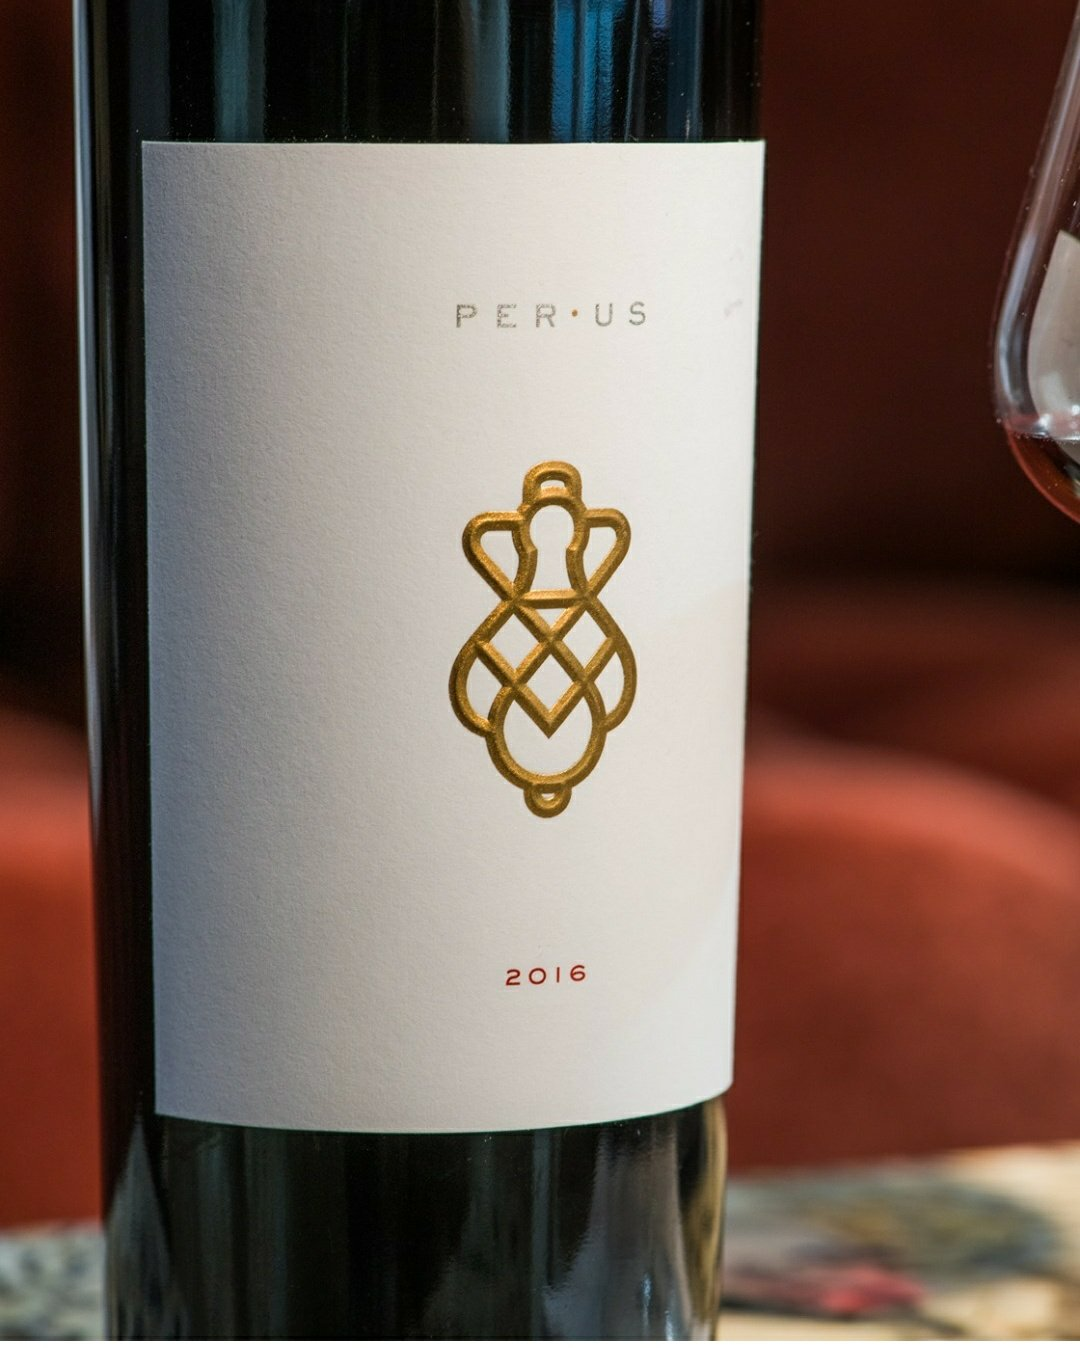 Perus Alessio 2016 wine helps you elevate your wine experience